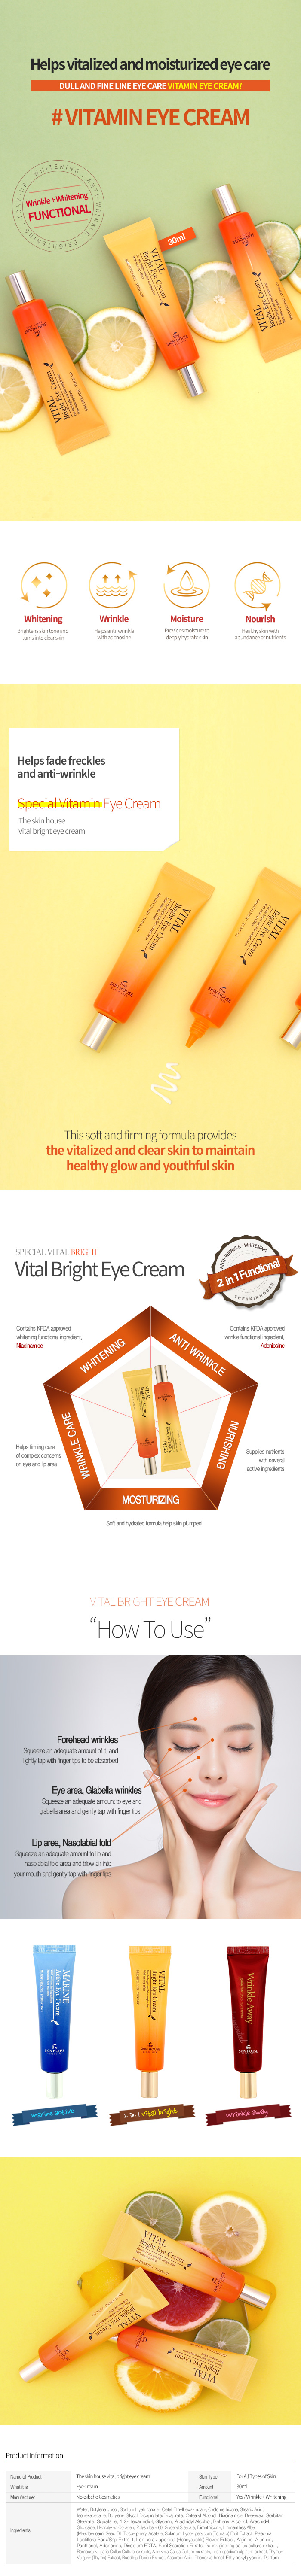 The Skin House Vital Bright Eye Cream 30mL